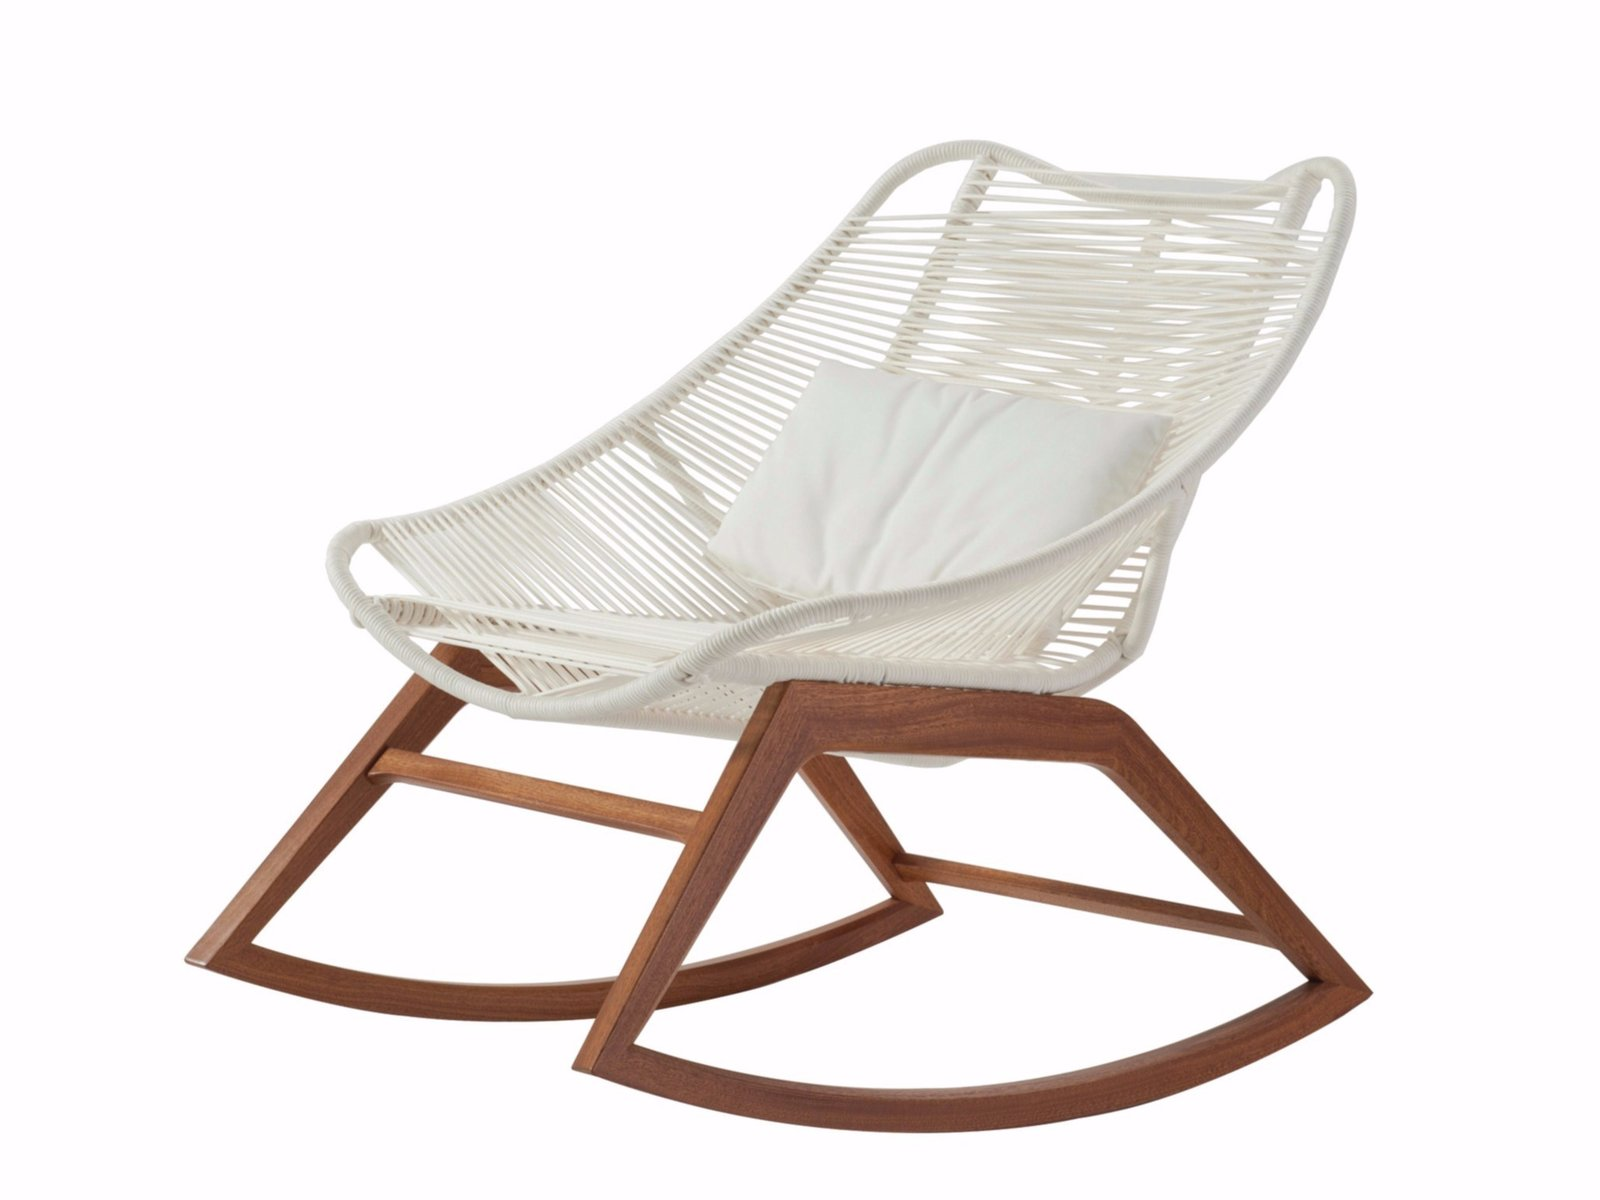 Designed by Antoine Fritsch and Vivien Durisottit for Roche Bobois, this armchair is a modern mix of styles. Beautifully sculptural with a mahogany frame and a seat constructed from two intersecting nautical cord braids on a lacquered steel frame this chair could be used inside or out.  Photo 3 of 6 in 15 Modern Outdoor Seating Pieces To Take You Into Summer